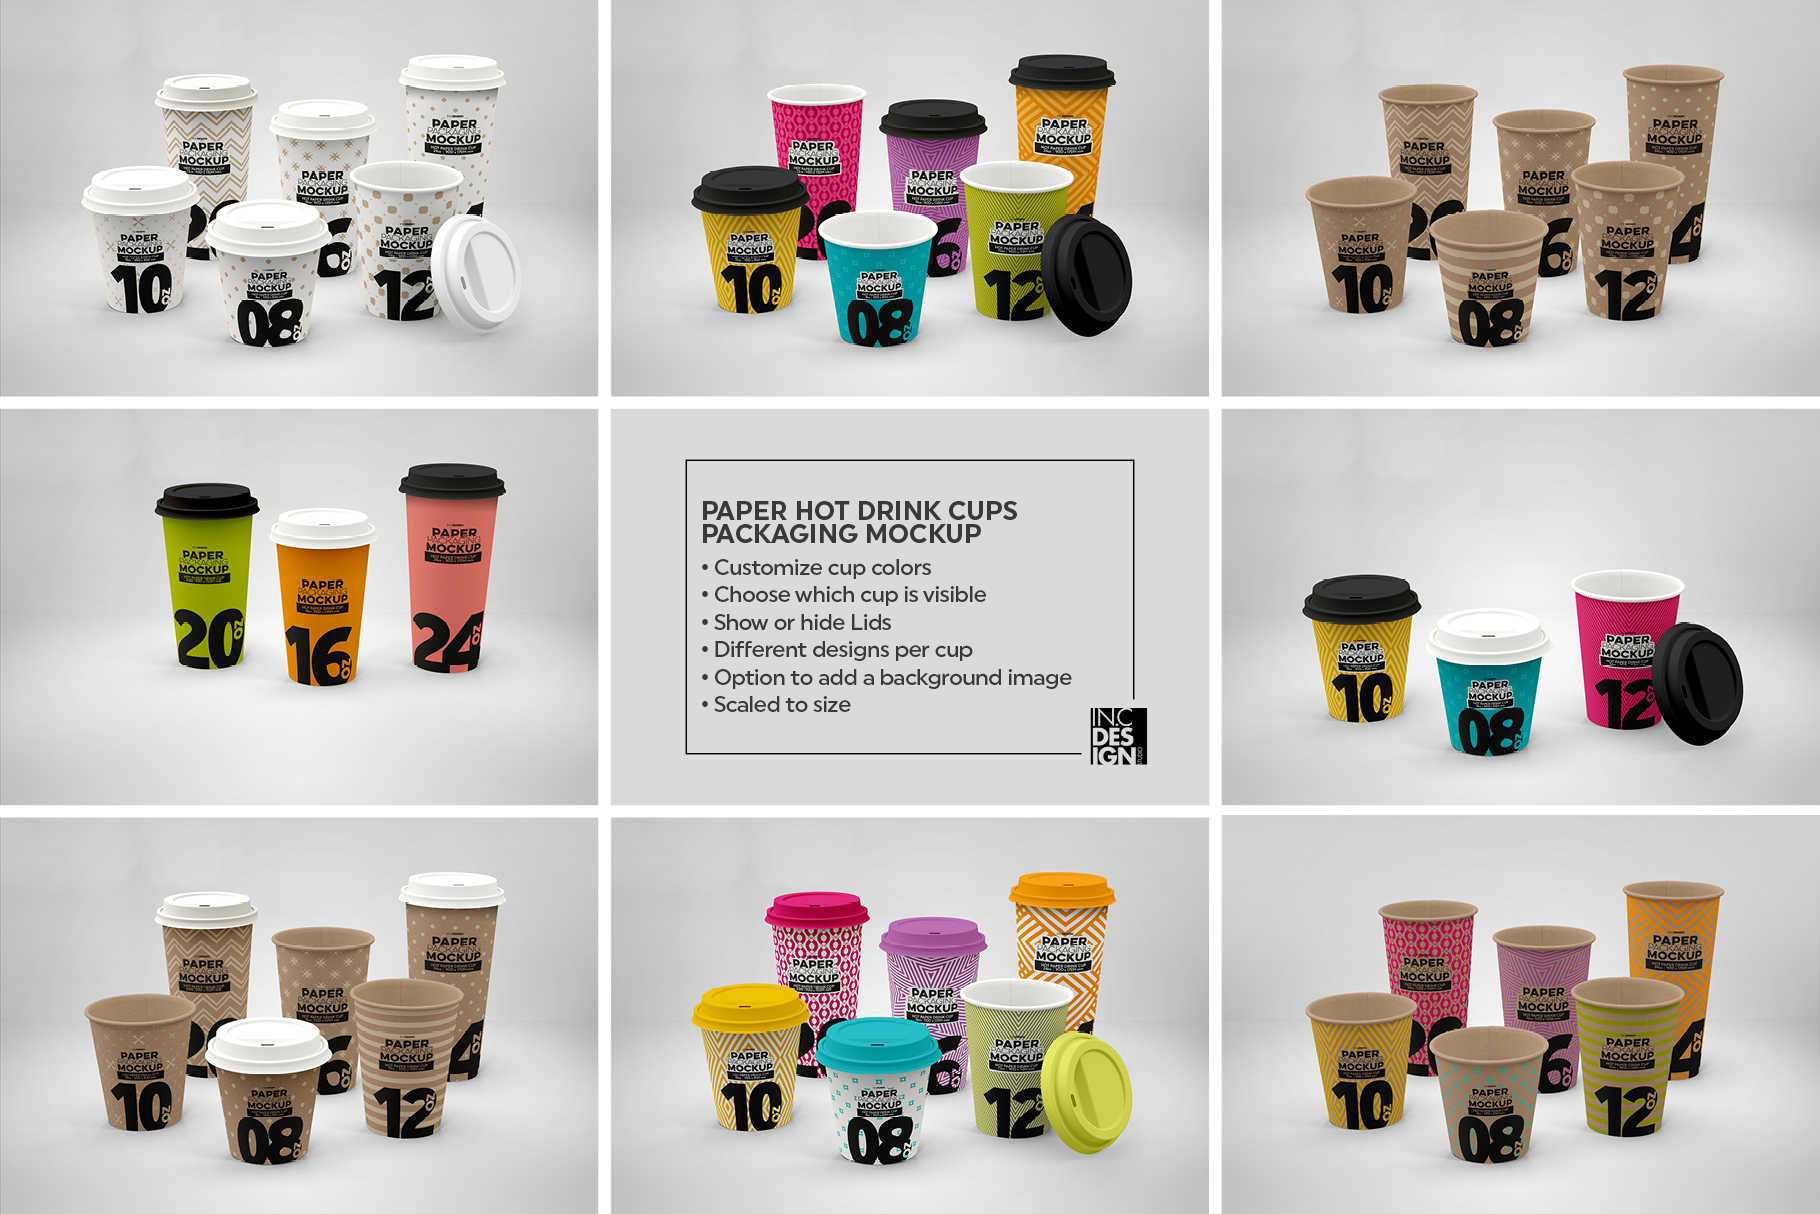 Paper Hot Drink Cups Packaging Mockup example image 6